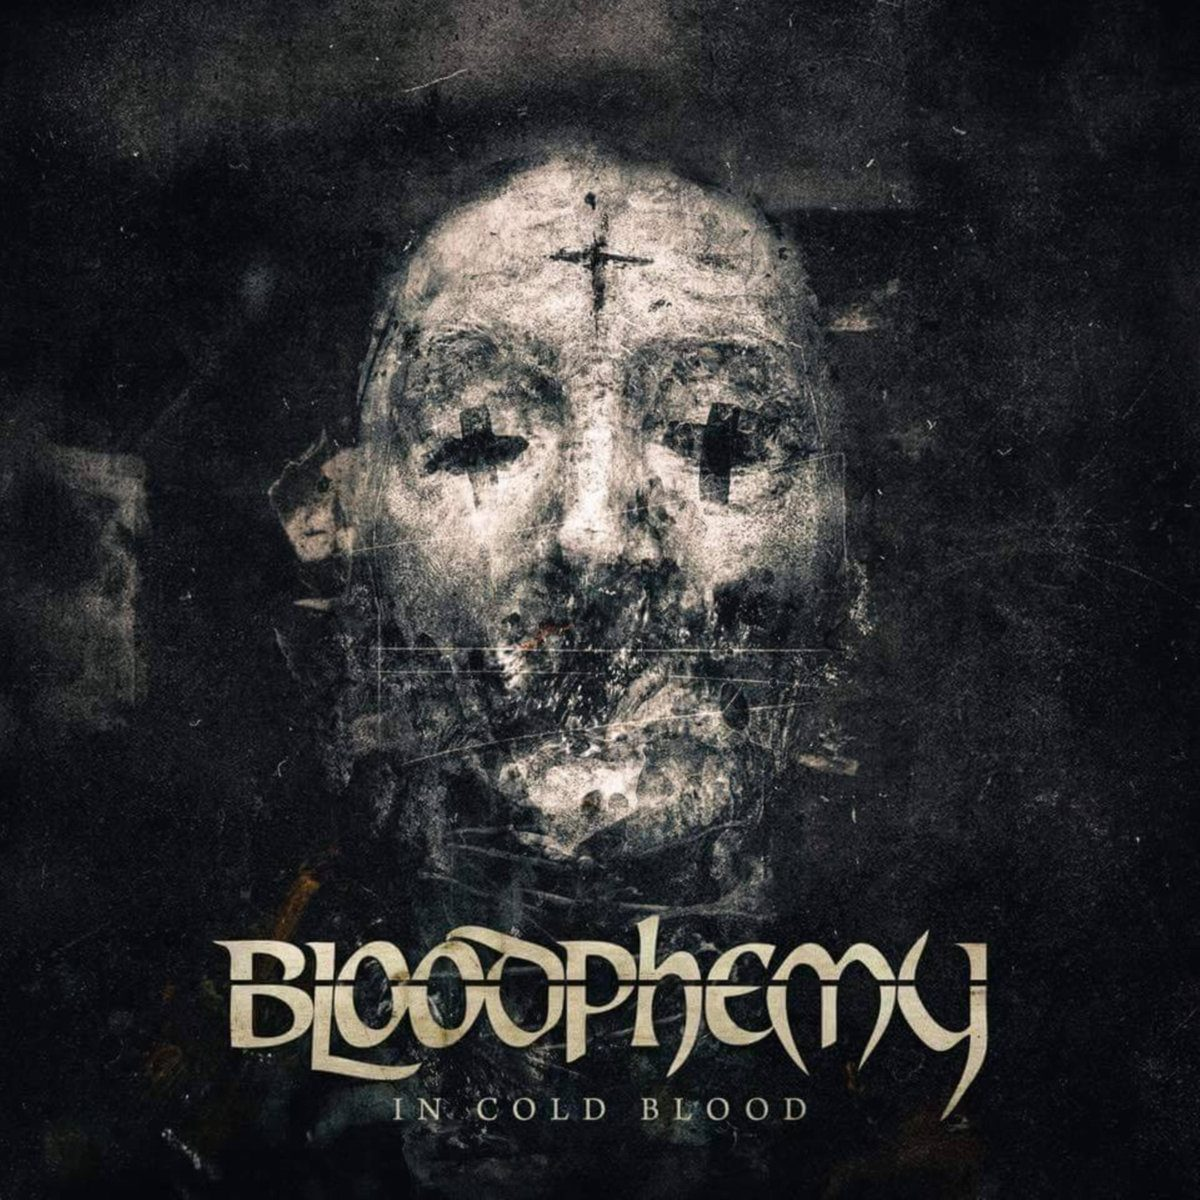 CD] 2019 – In Cold Blood – Digipack – Bloodphemy